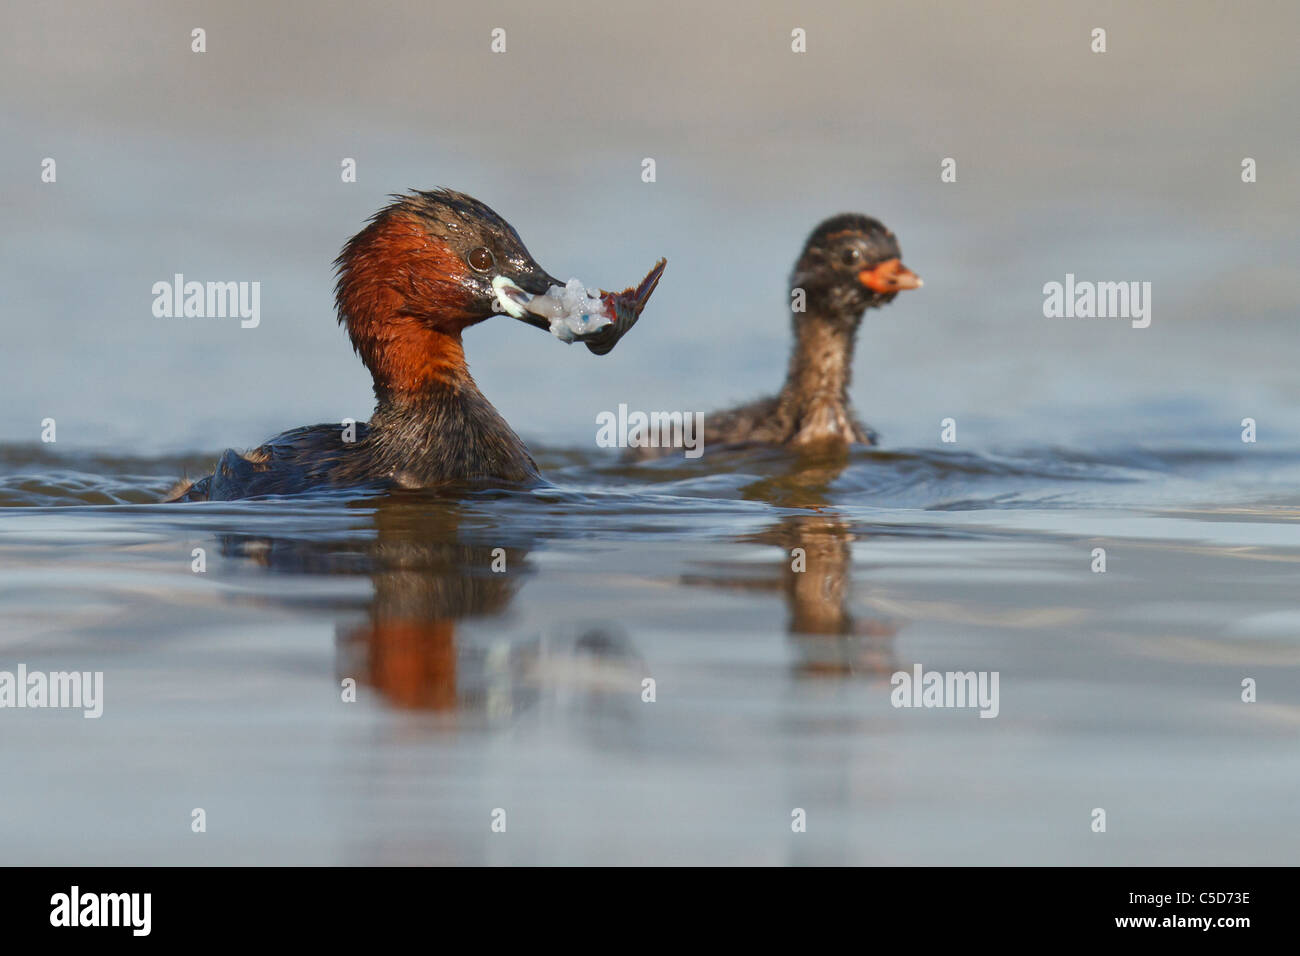 Little grebe (tachybaptus ruficollis) adult and chick. Spain. - Stock Image